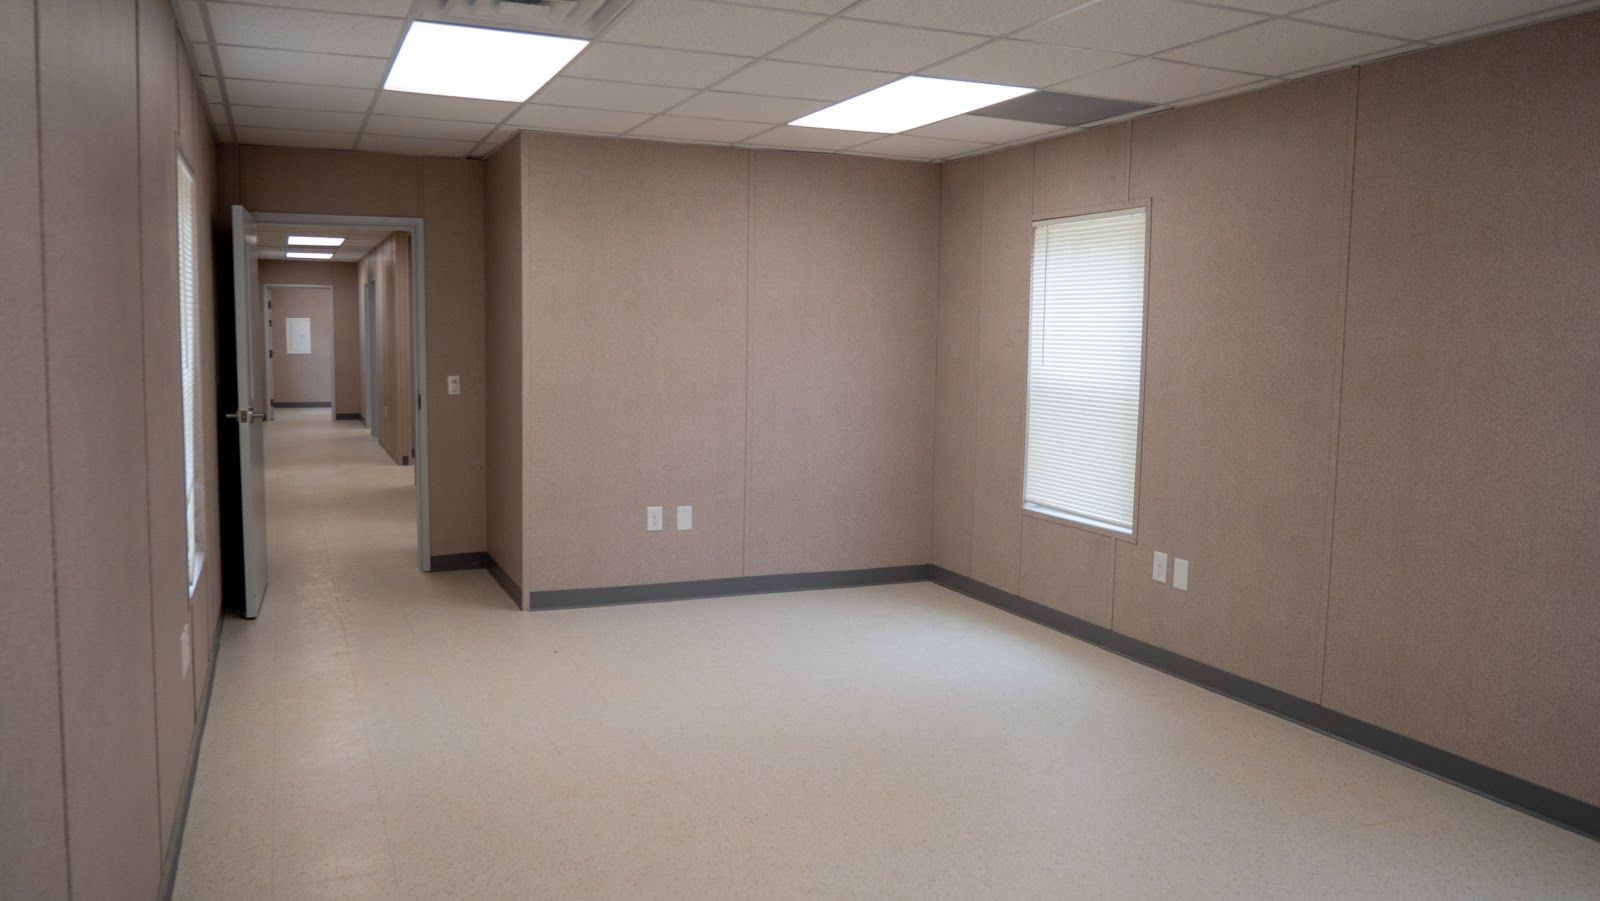 Interior of an outpatient drug treatment center in a modular building